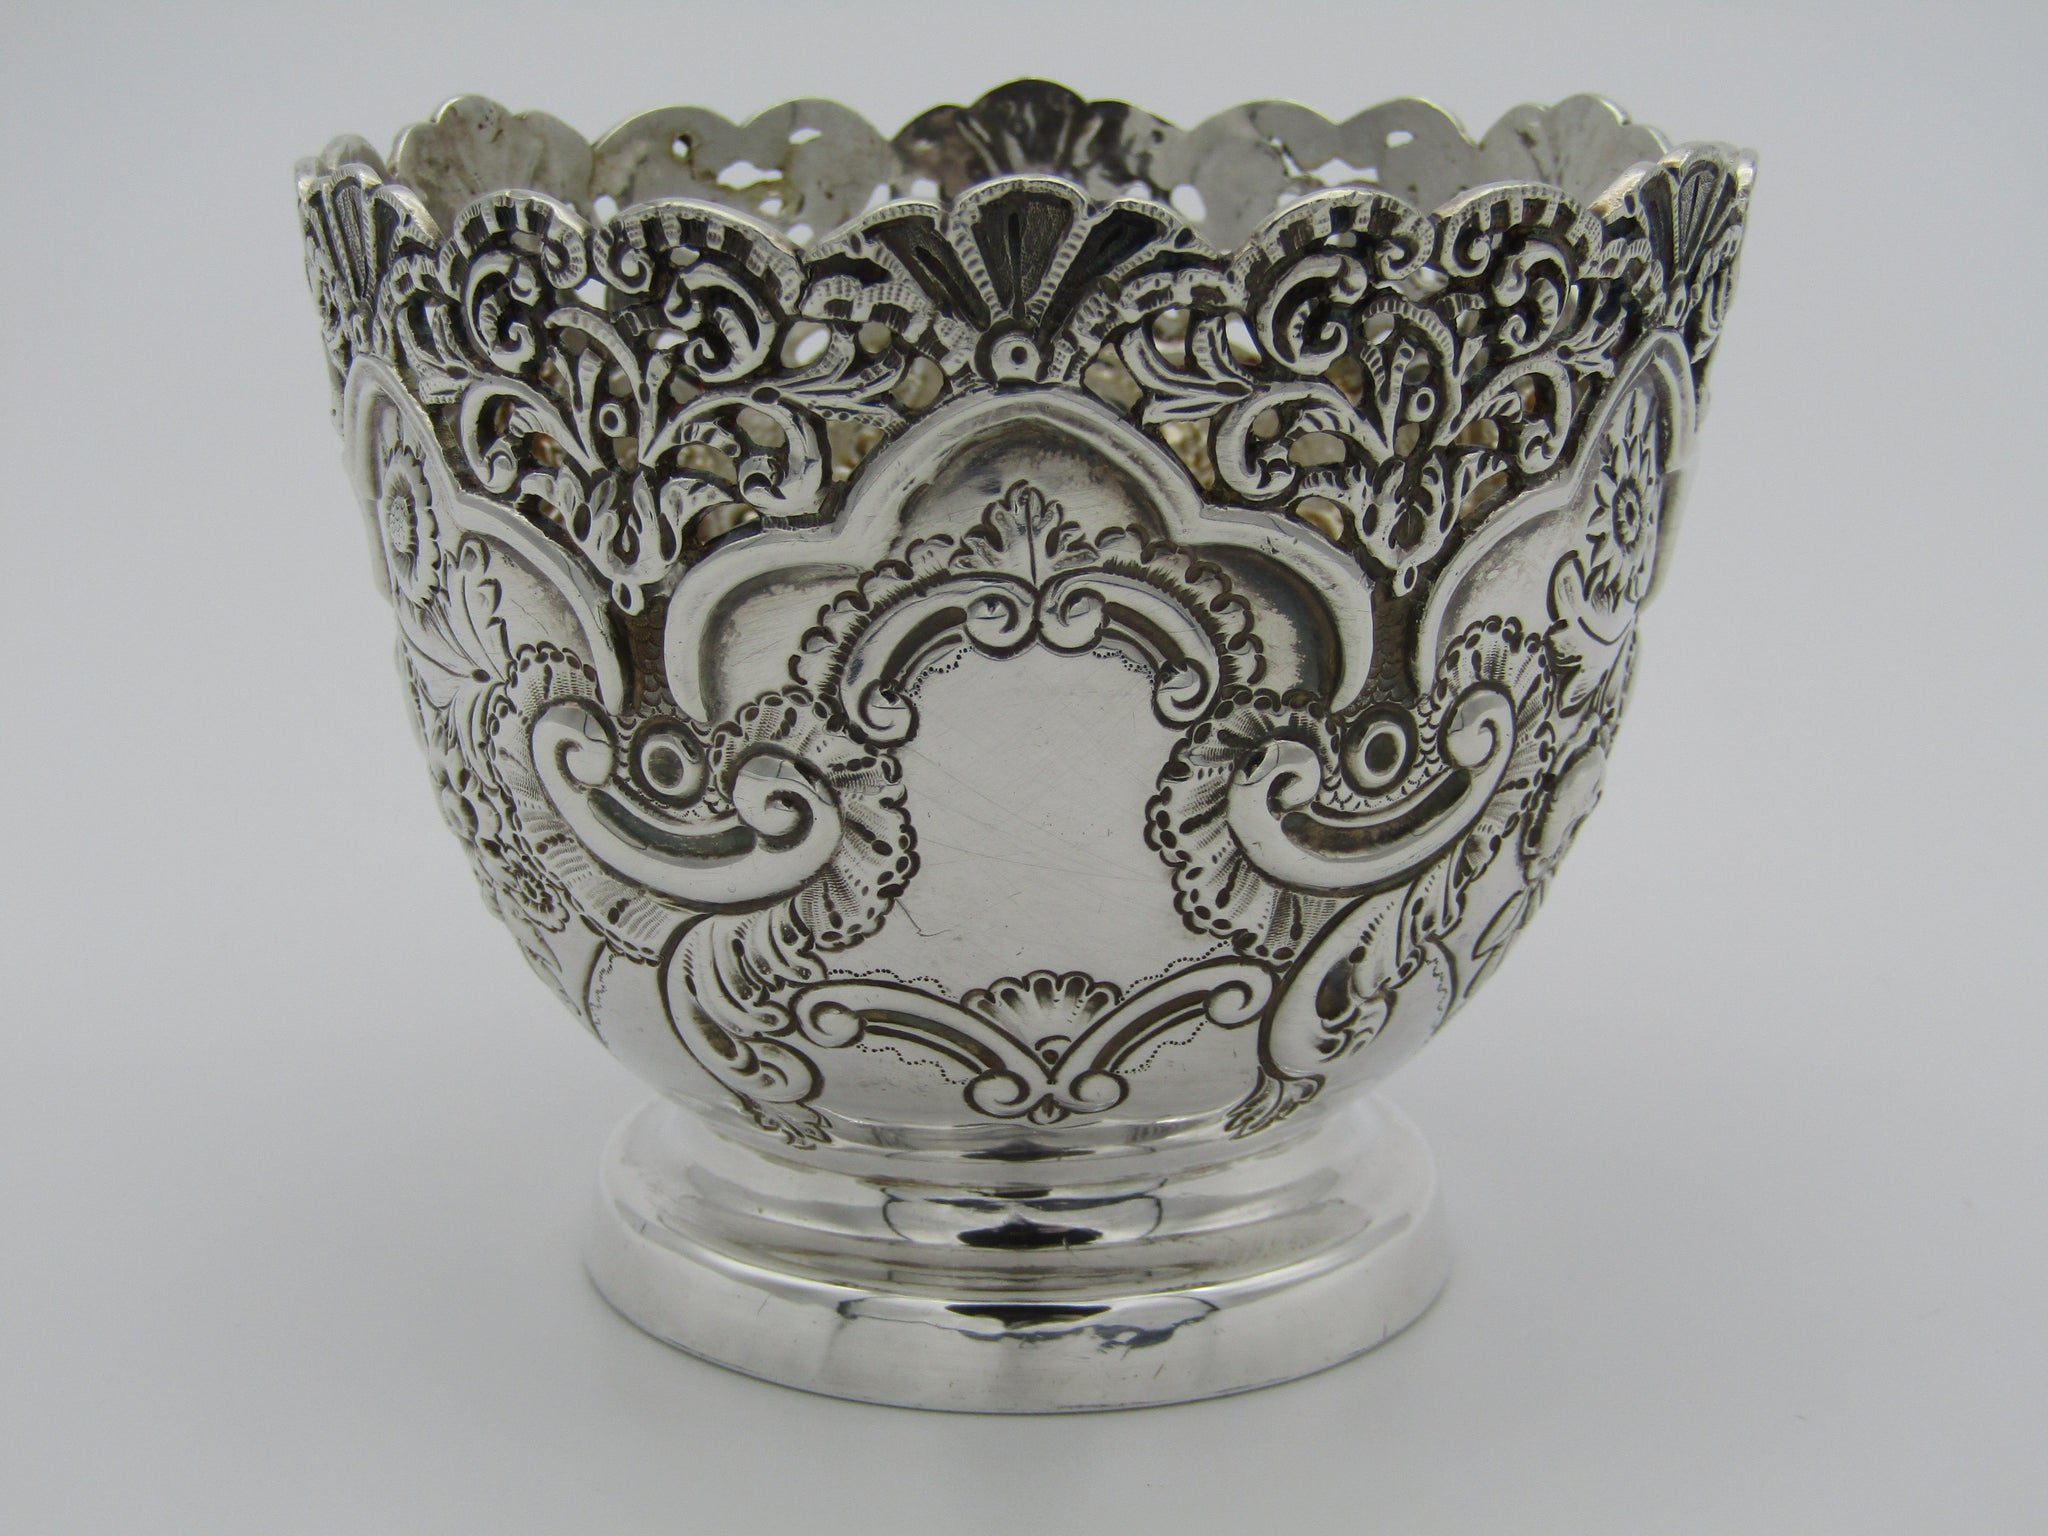 Victorian silver rose bowl by George Moudsley Jackson, London 1895.